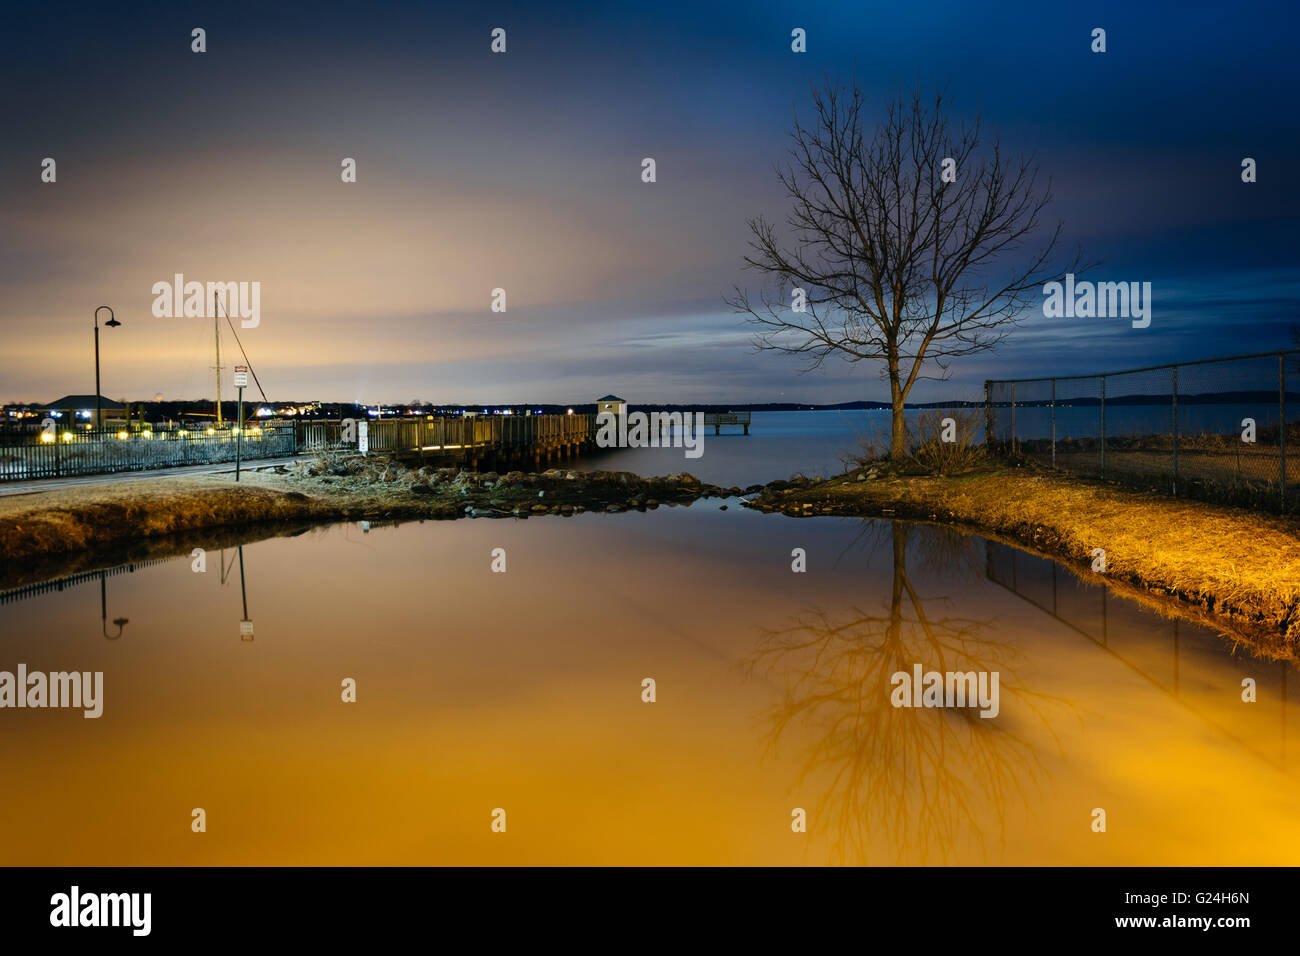 The waterfront at night, in Havre de Grace, Maryland. Stock Photo